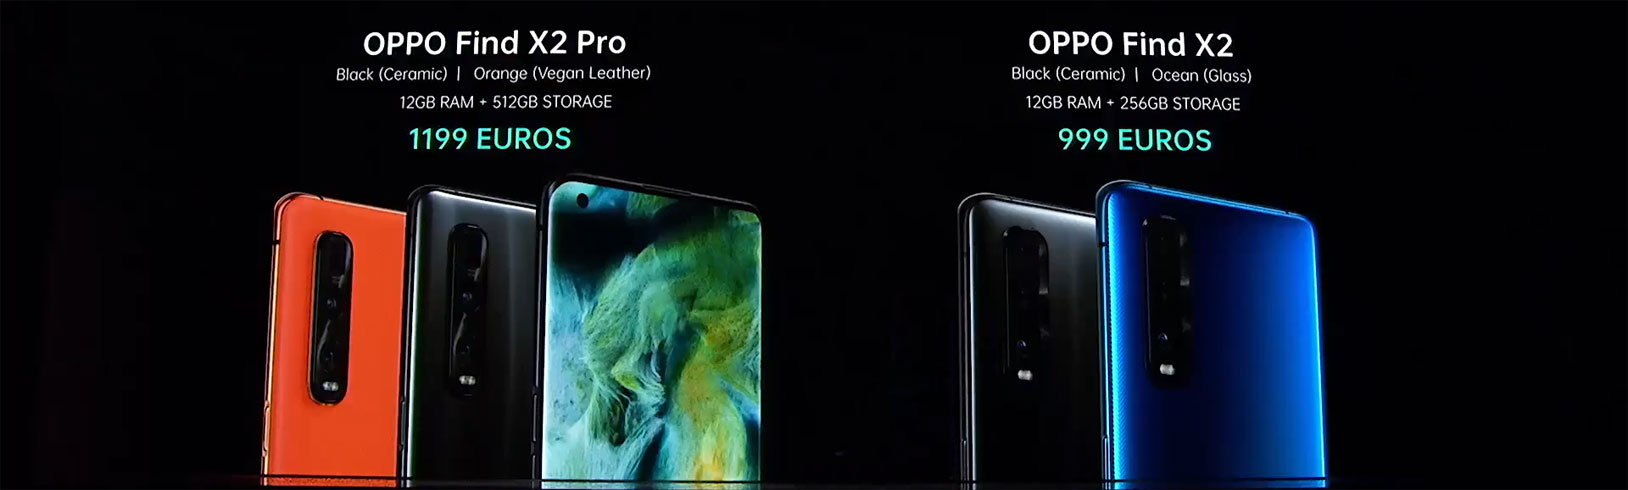 Oppo Find X2 and Oppo Find X2 specifications, prices, availability